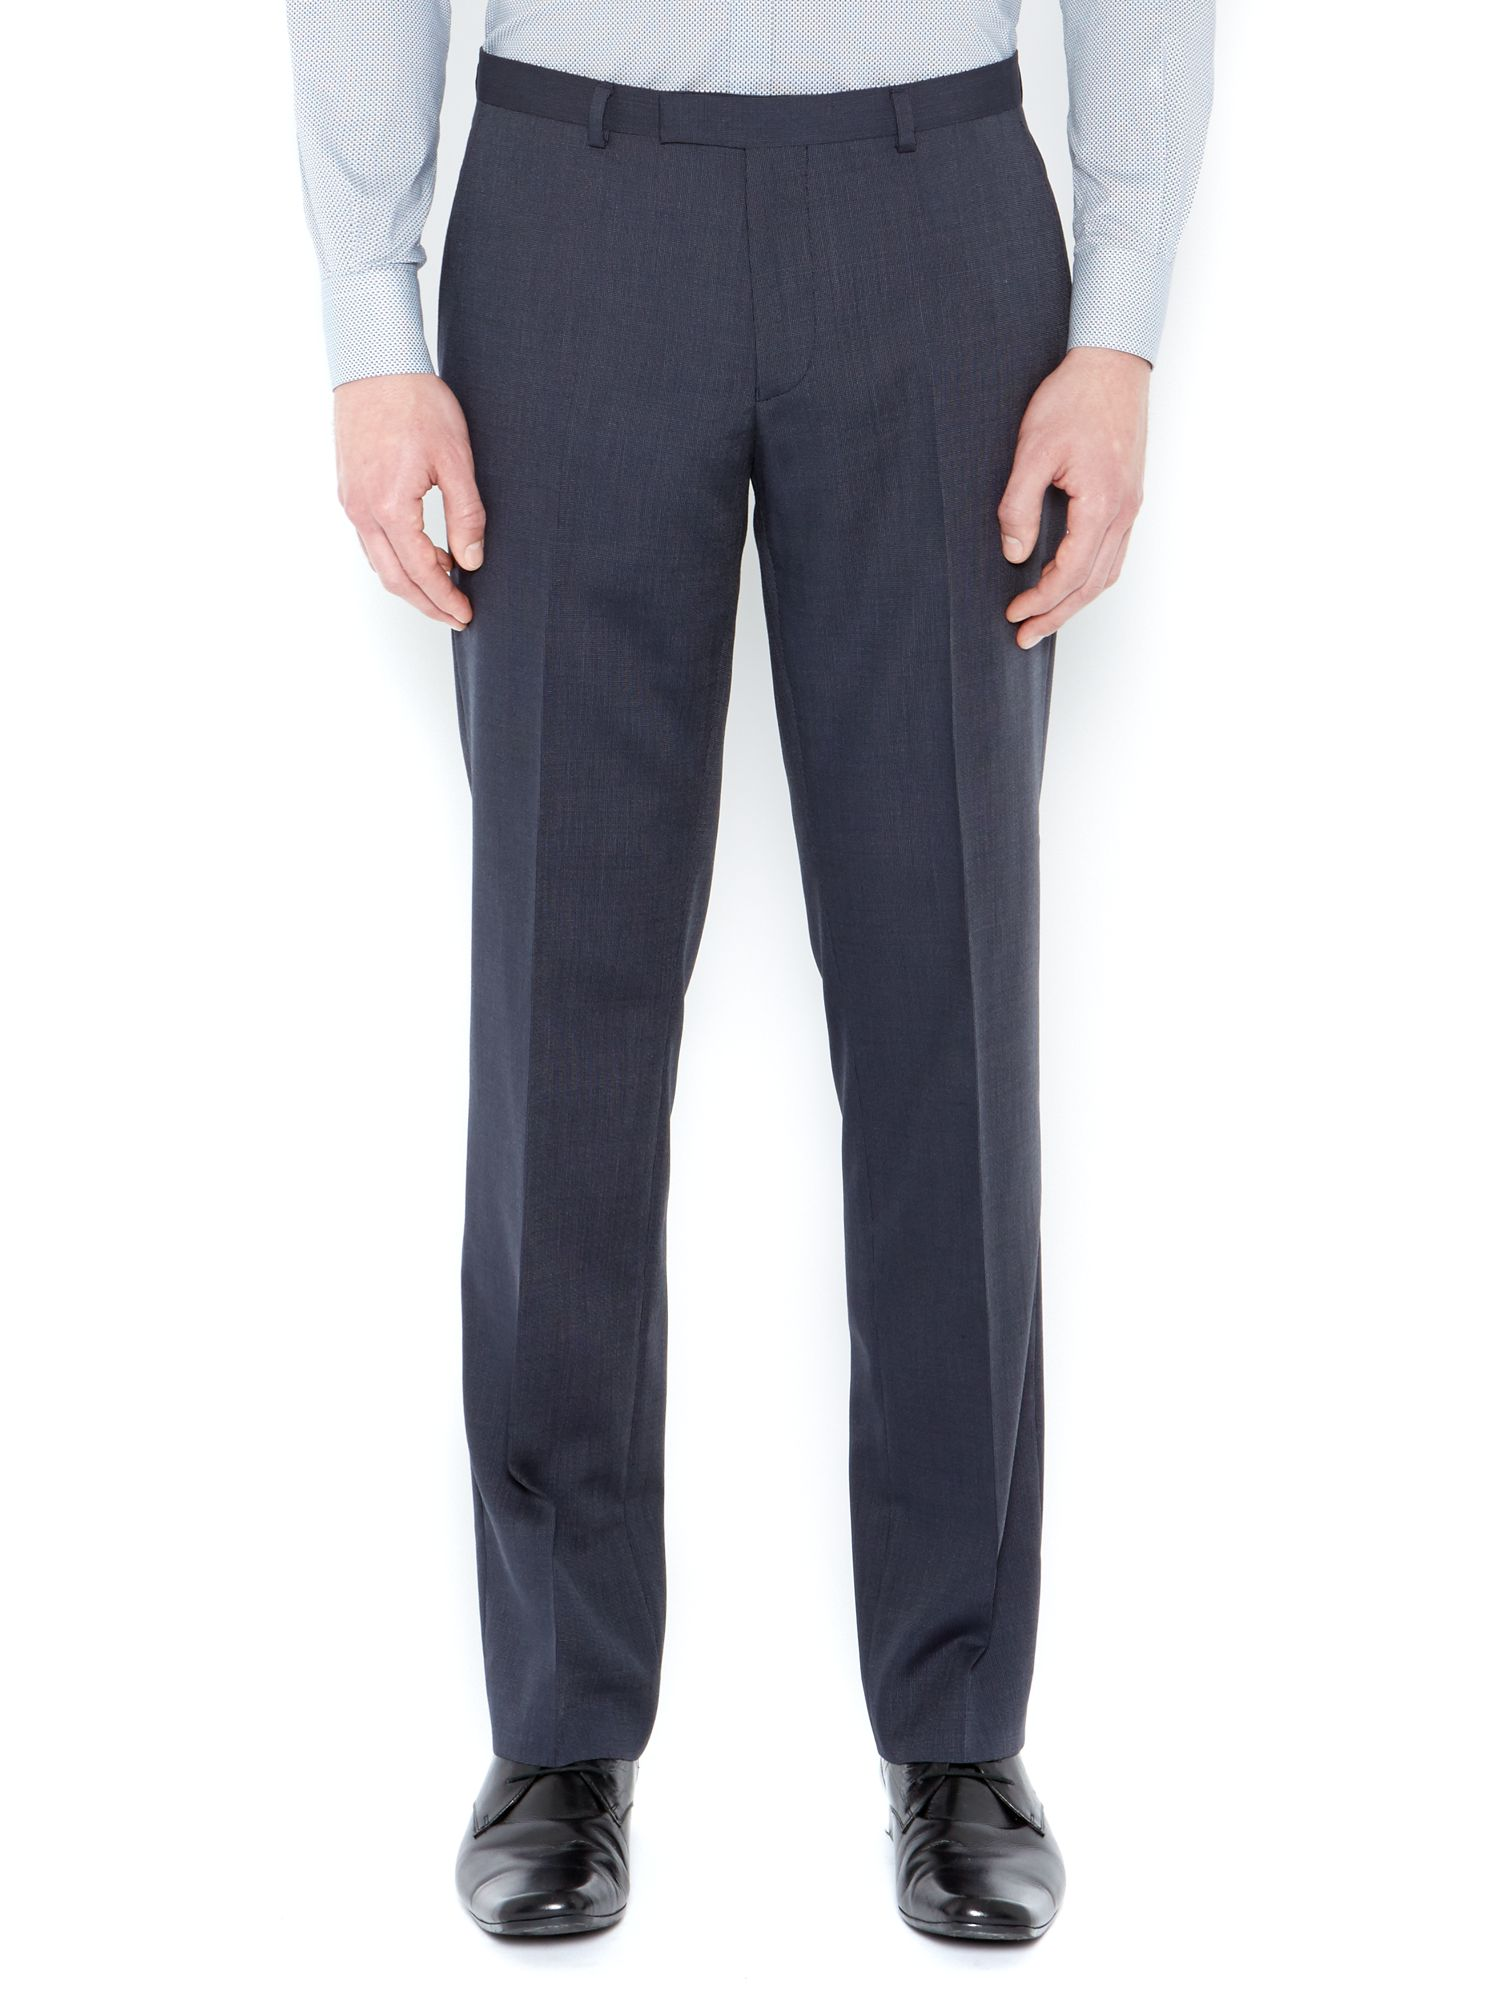 Grove pindot suit trouser